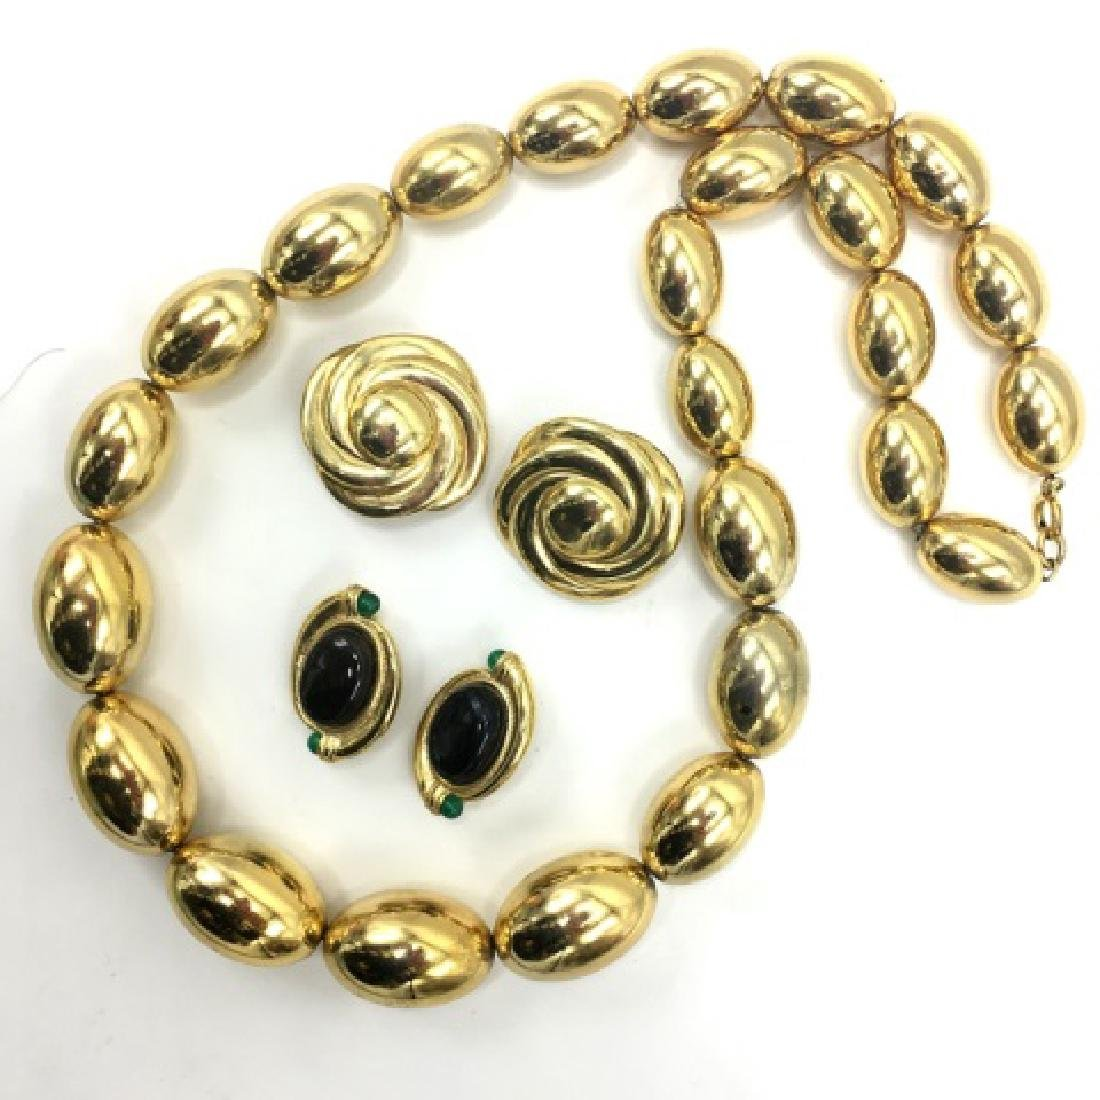 Vintage 1980s Gold Tone Costume Jewelry Set - 2